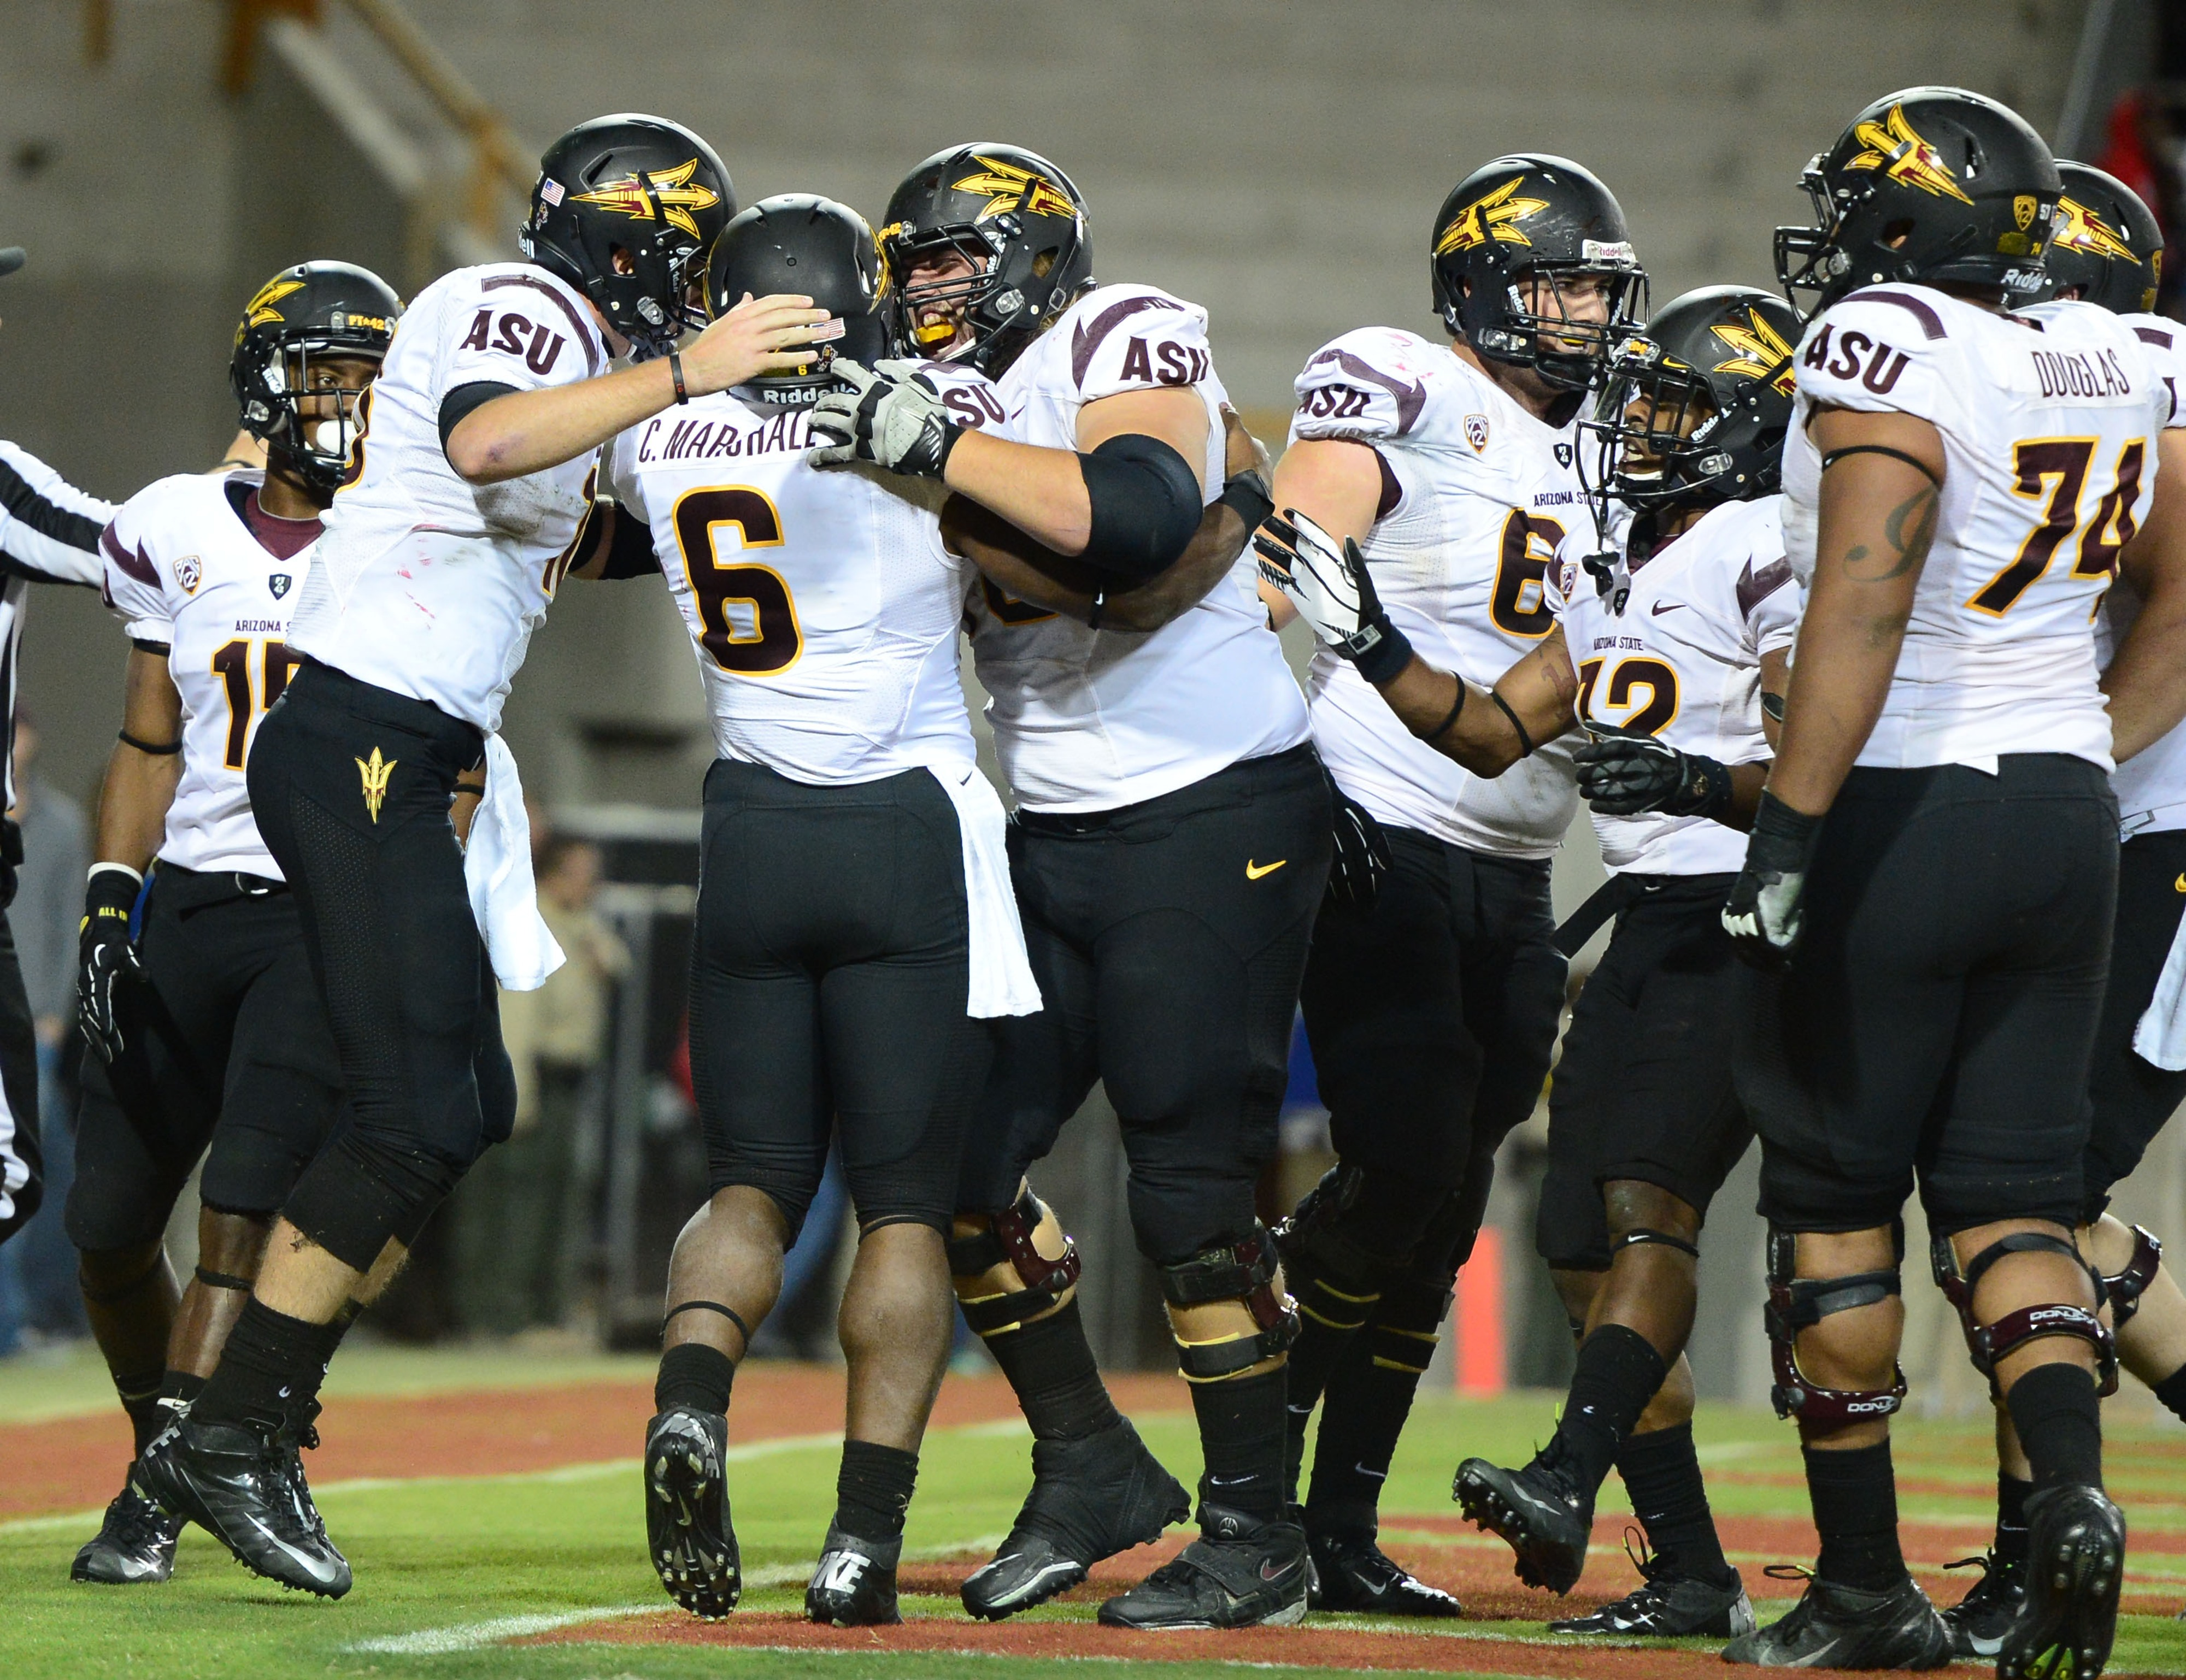 Hard work on and off the field pays off for the Sun Devils